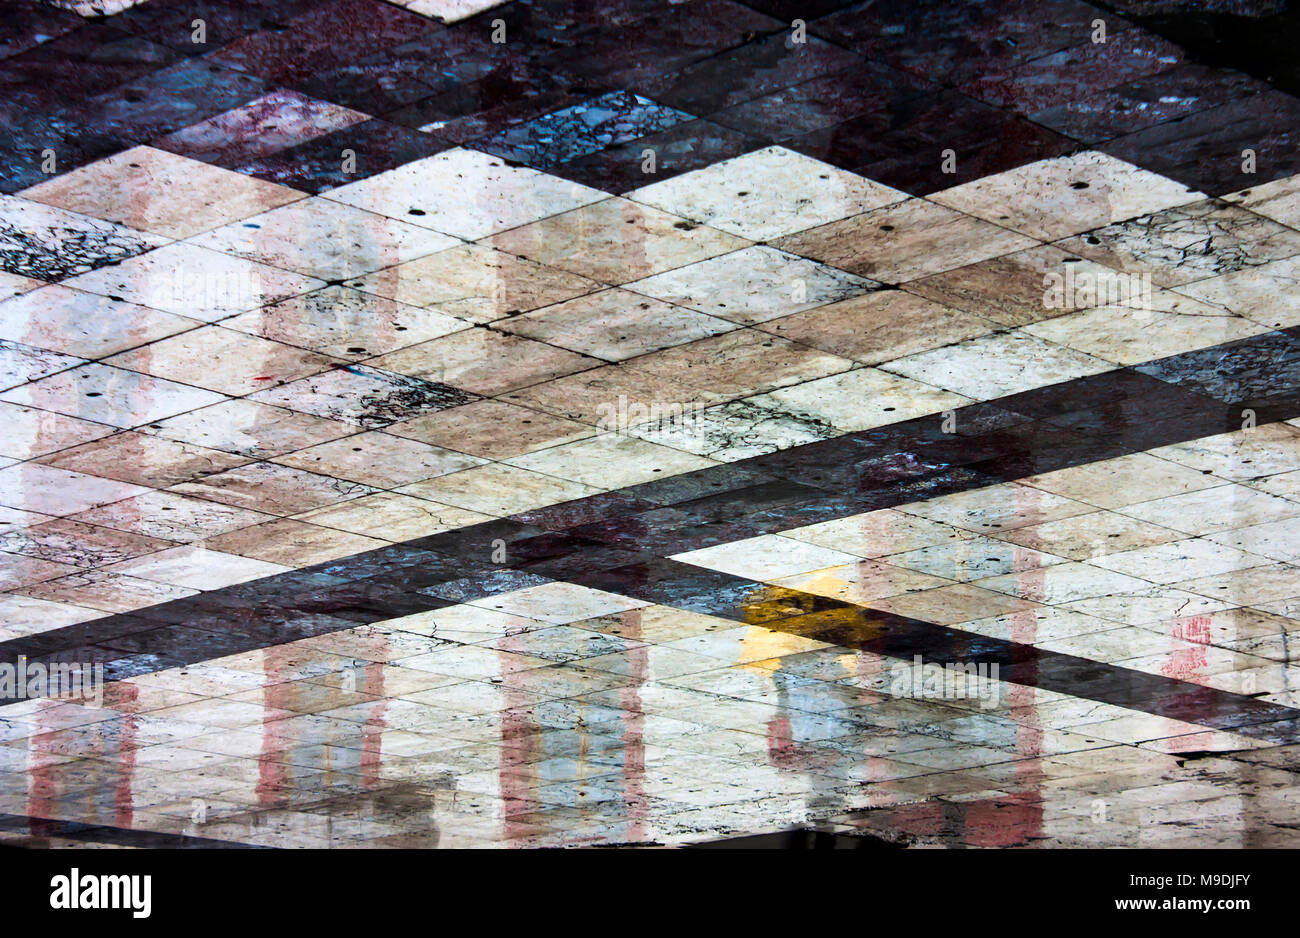 Abstract wet shiny geometrical city square pavement reflecting buildings and people on a rainy day Stock Photo